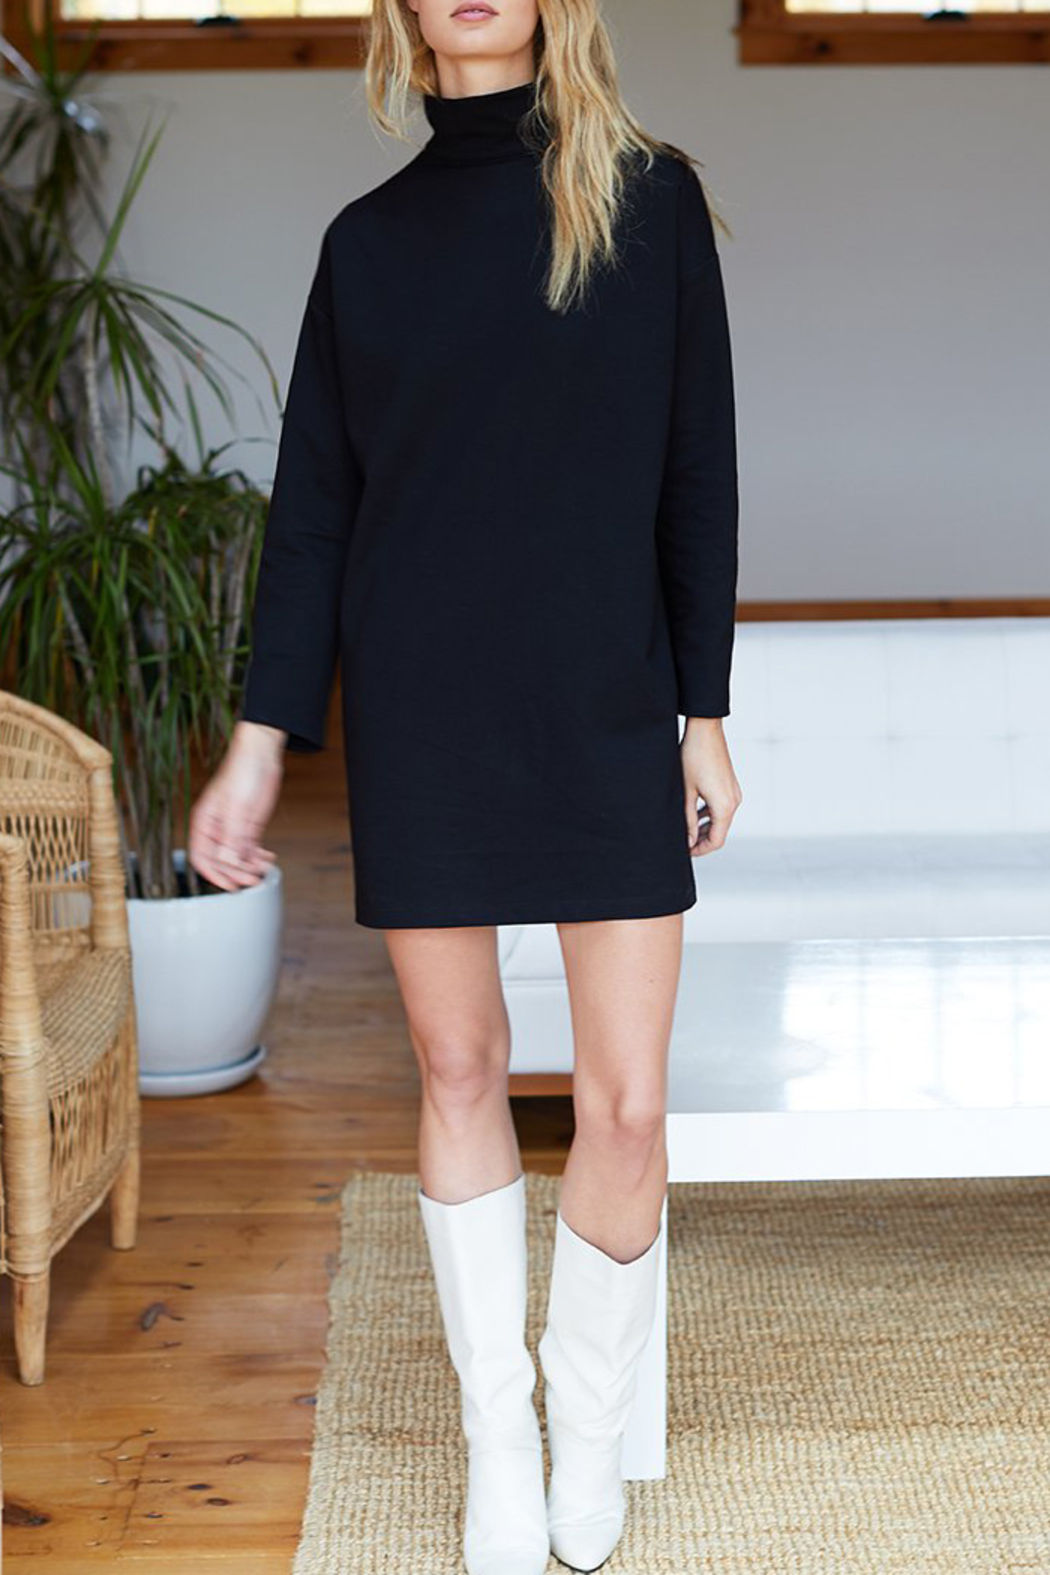 Emerson Fry Edie Ponte Turtleneck Dress - Front Cropped Image